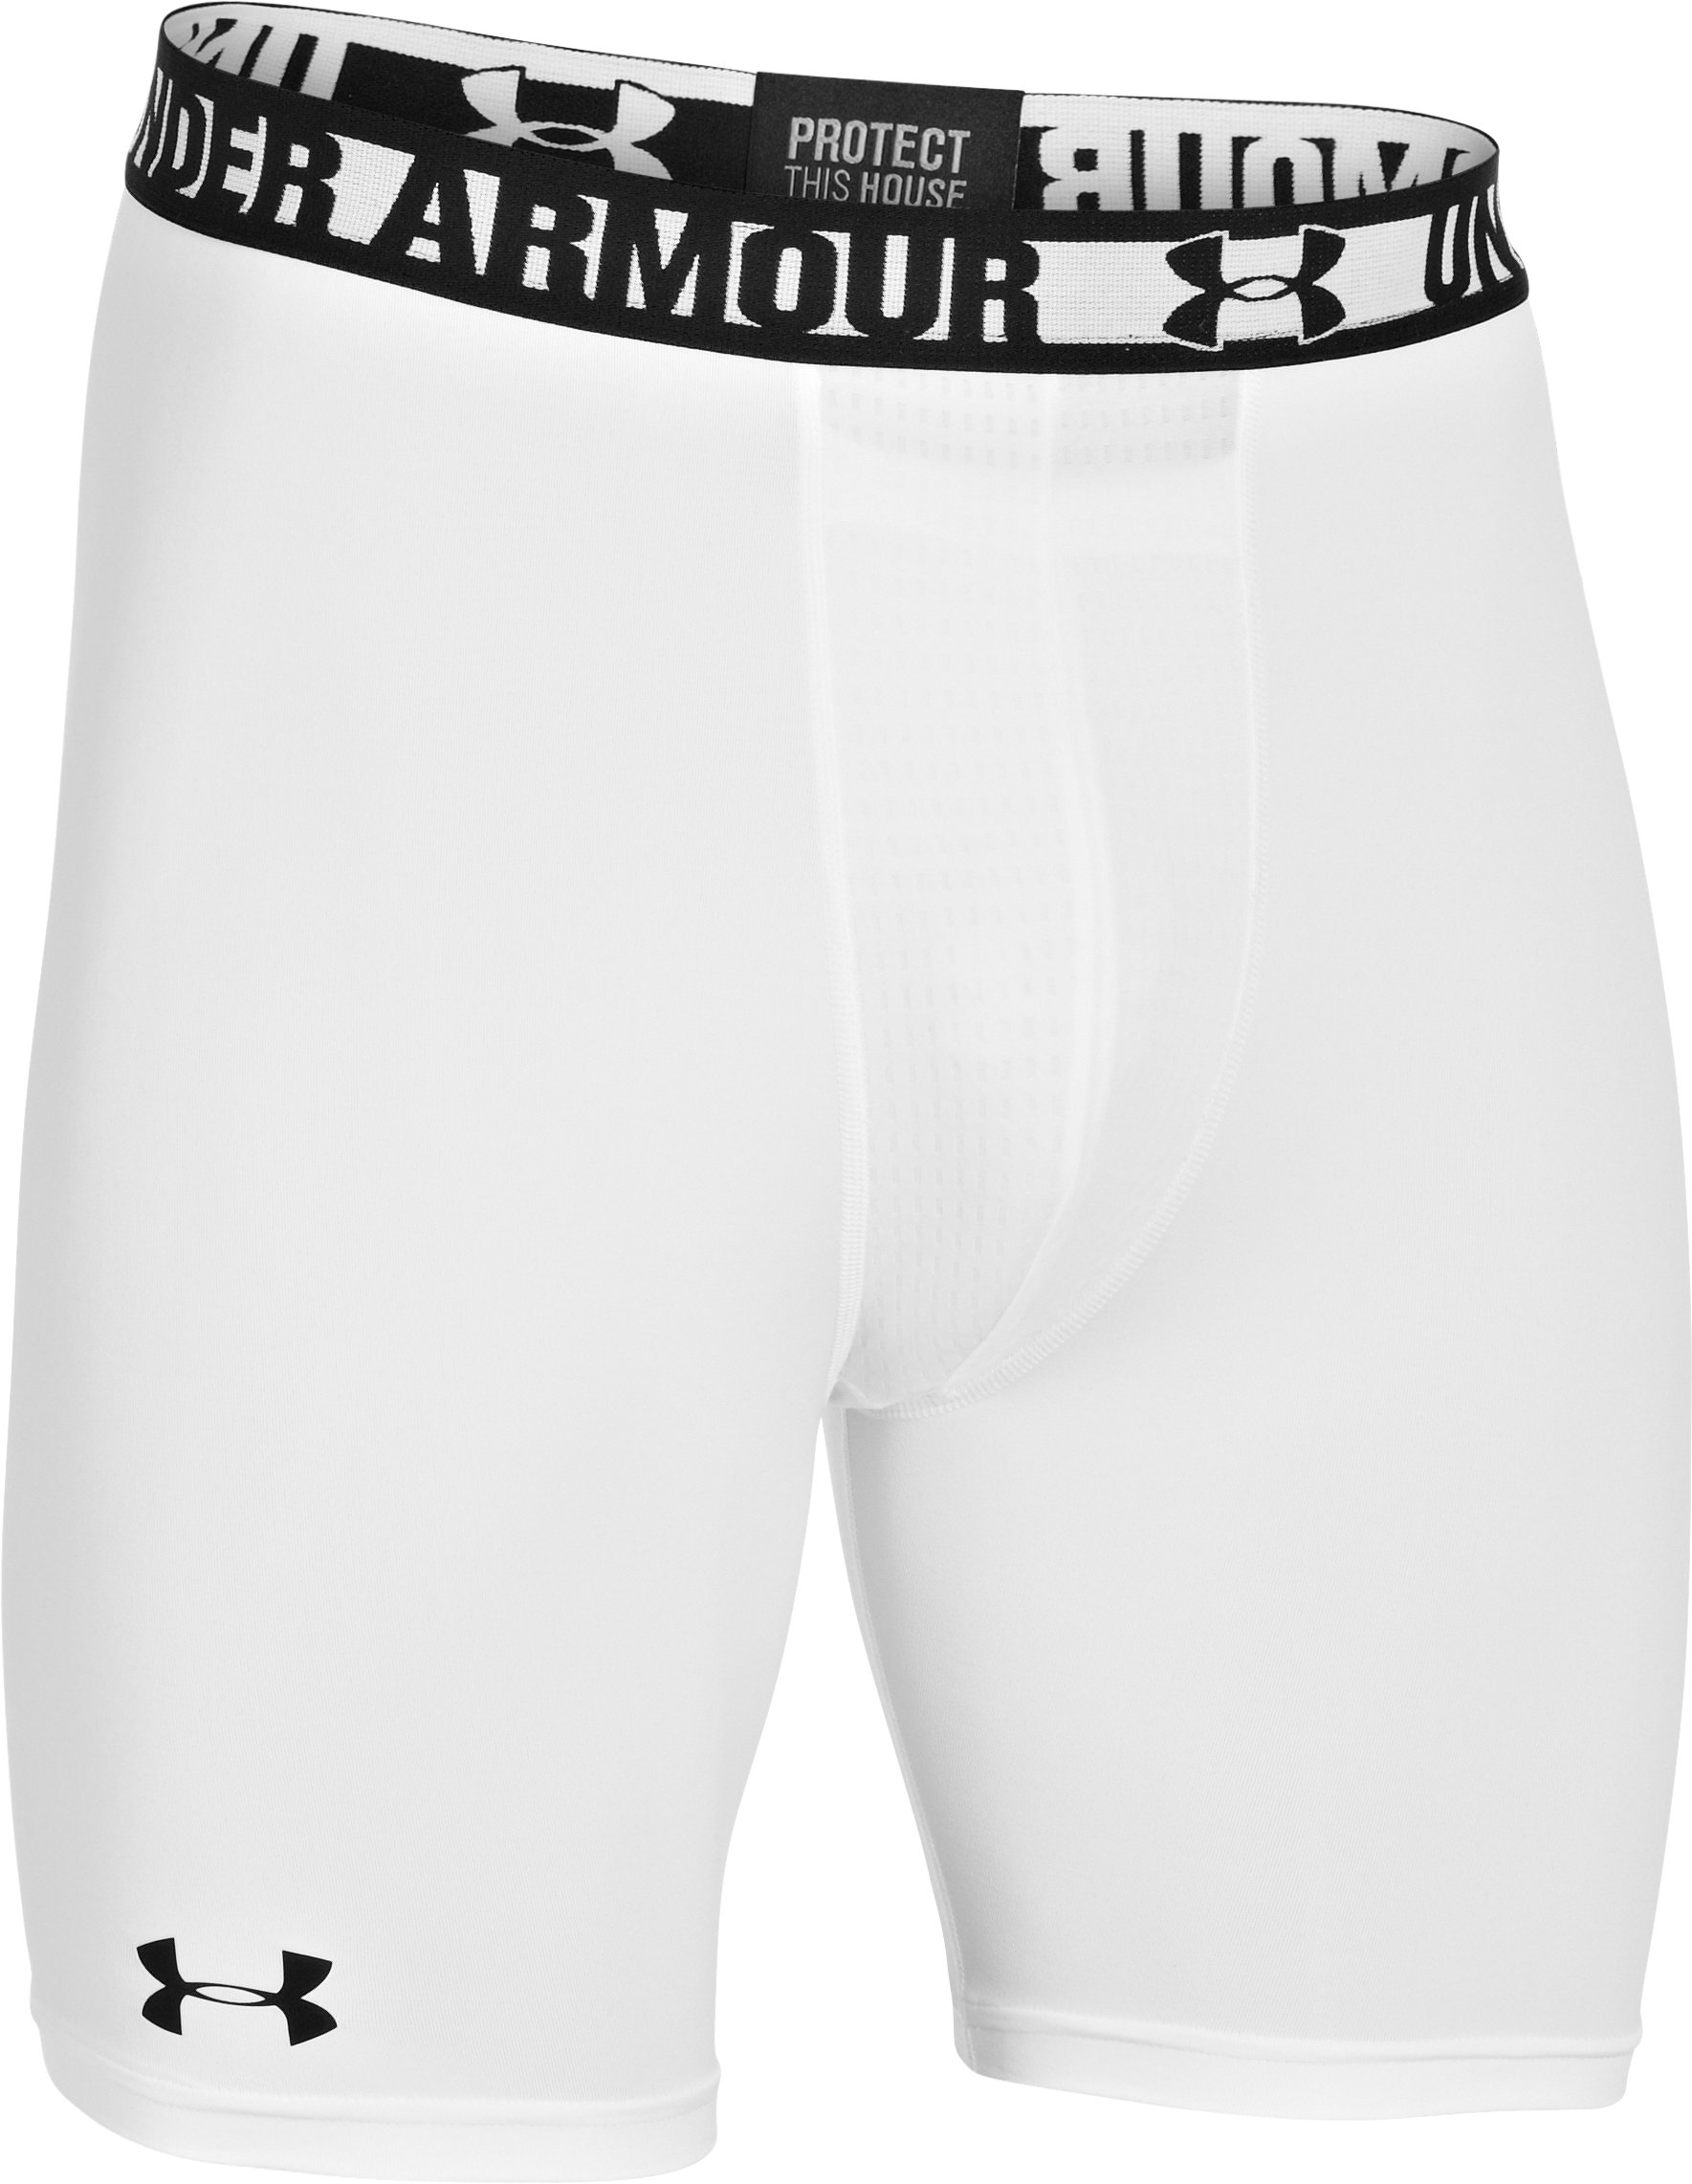 Men's HeatGear® Sonic Compression Shorts & Cup Combo, White, undefined